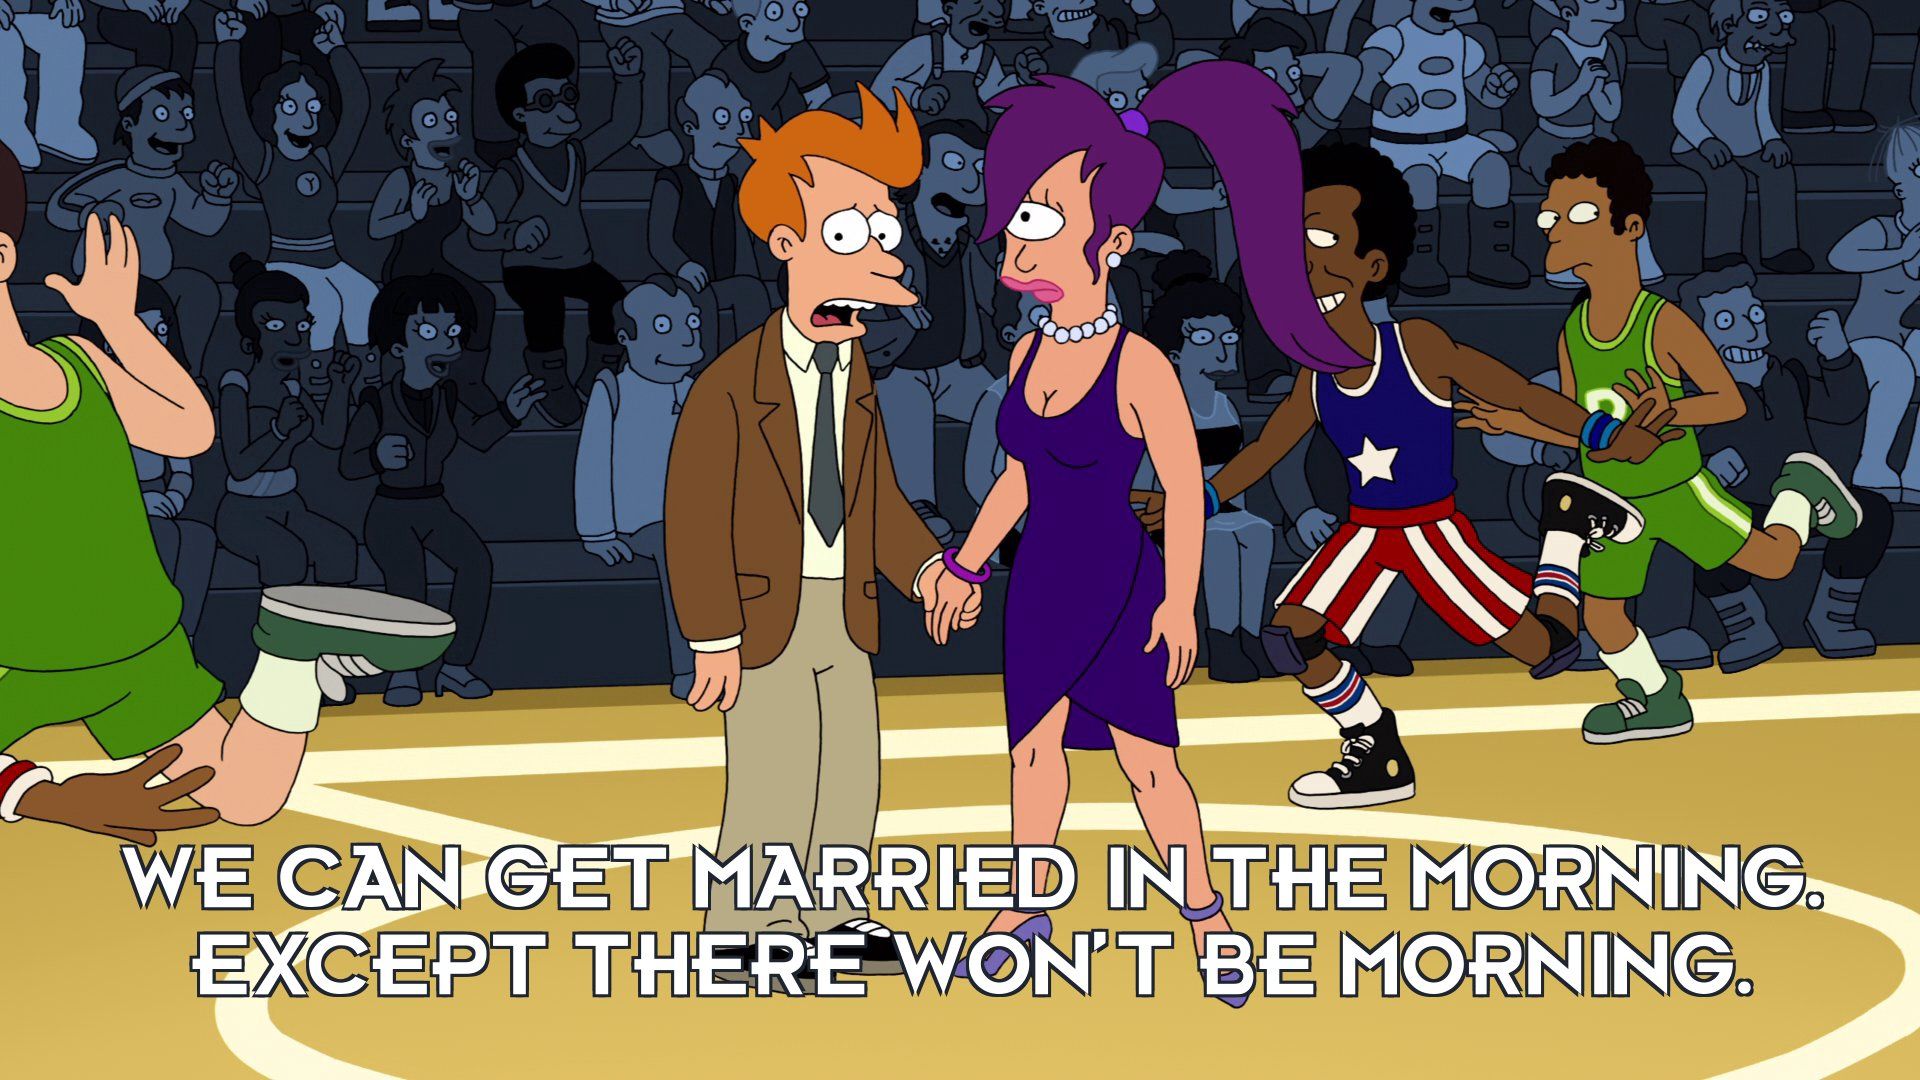 Philip J Fry: We can get married in the morning. Except there won't be morning.